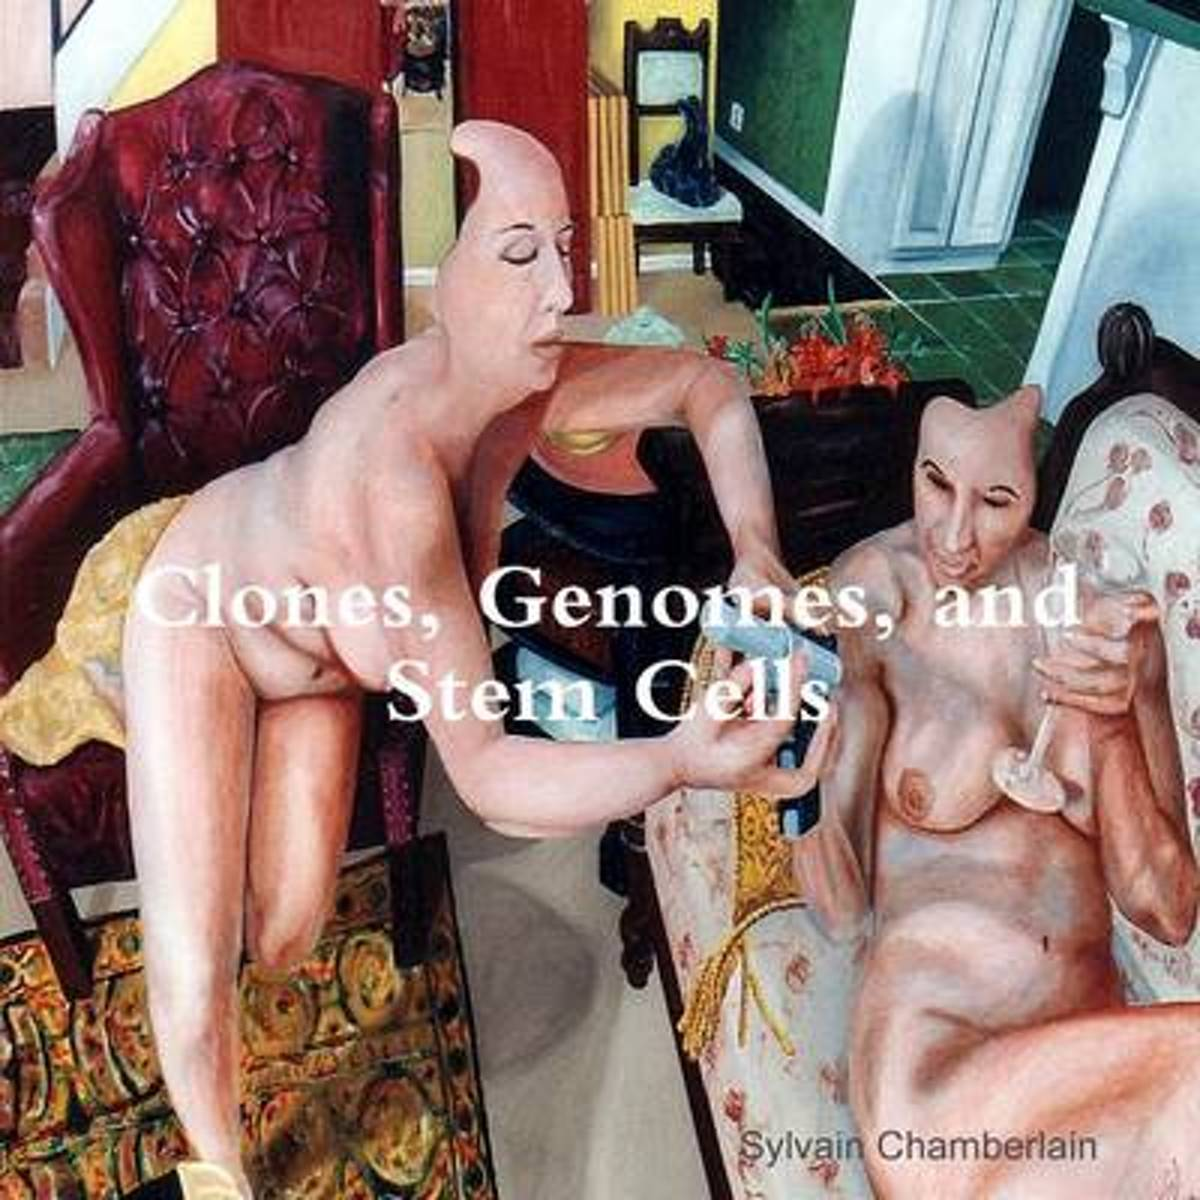 Clones, Genomes, and Stem Cells